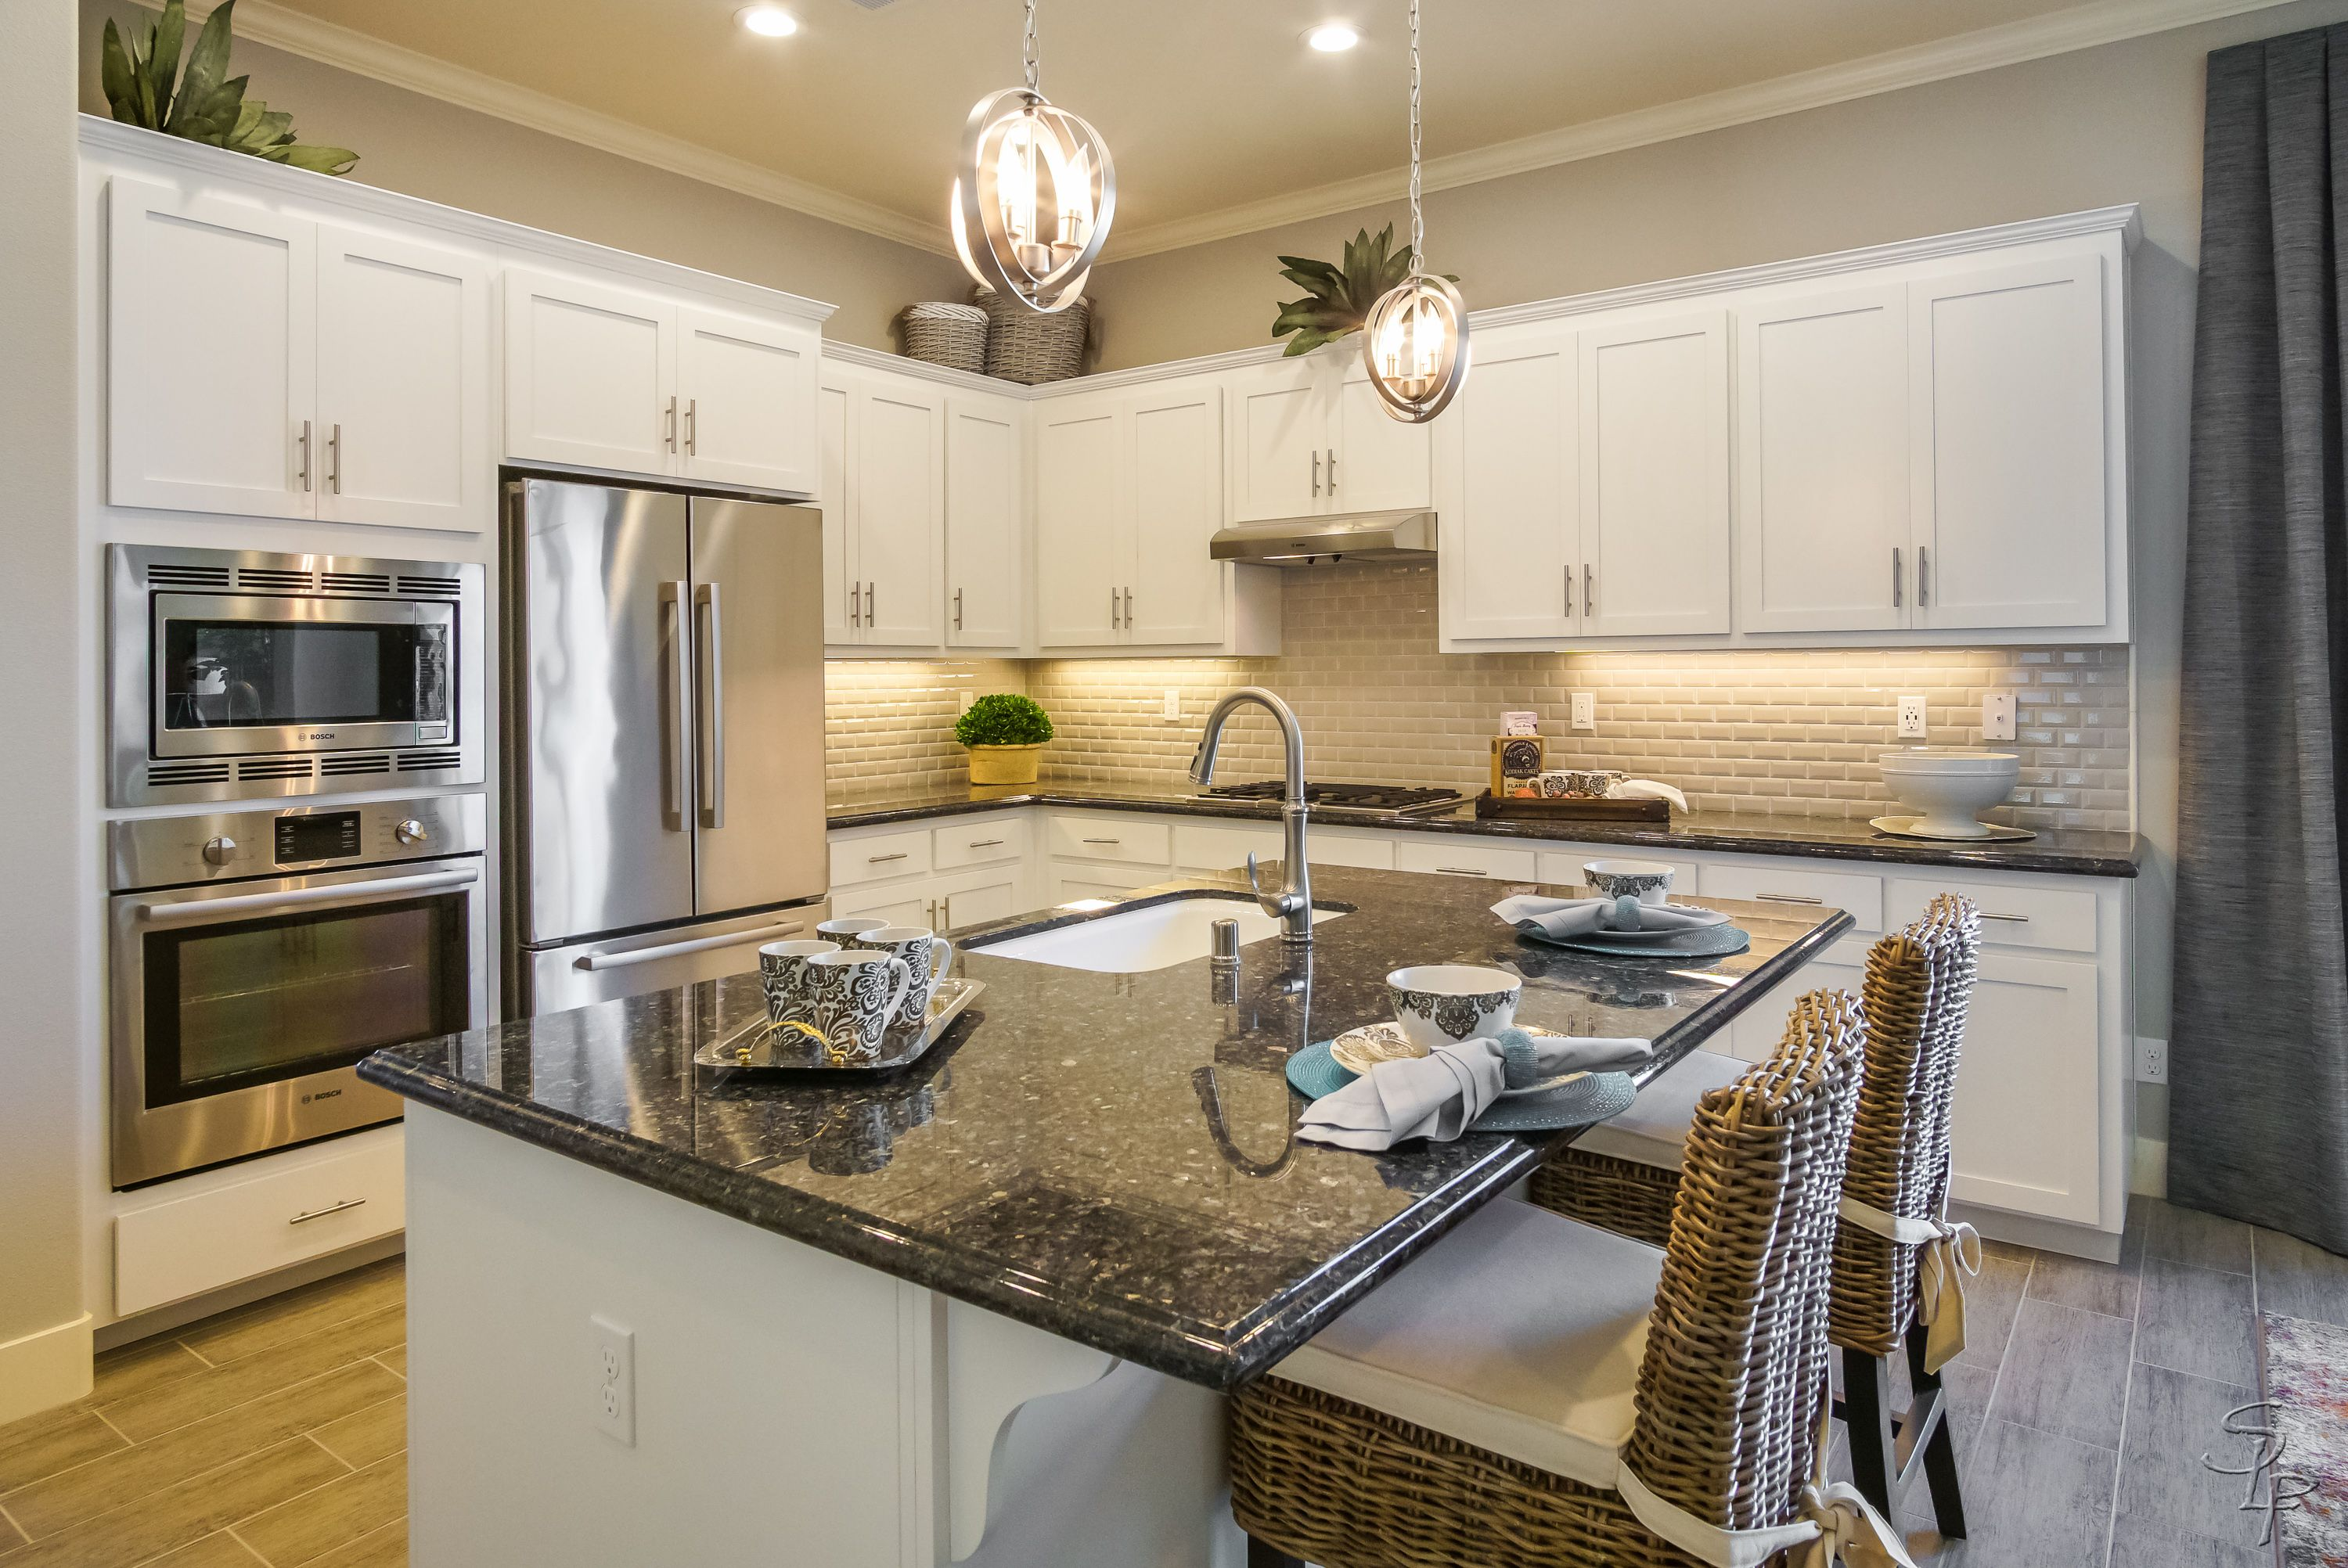 Kitchen featured in The Monterey By Anderson Homes in Santa Cruz, CA